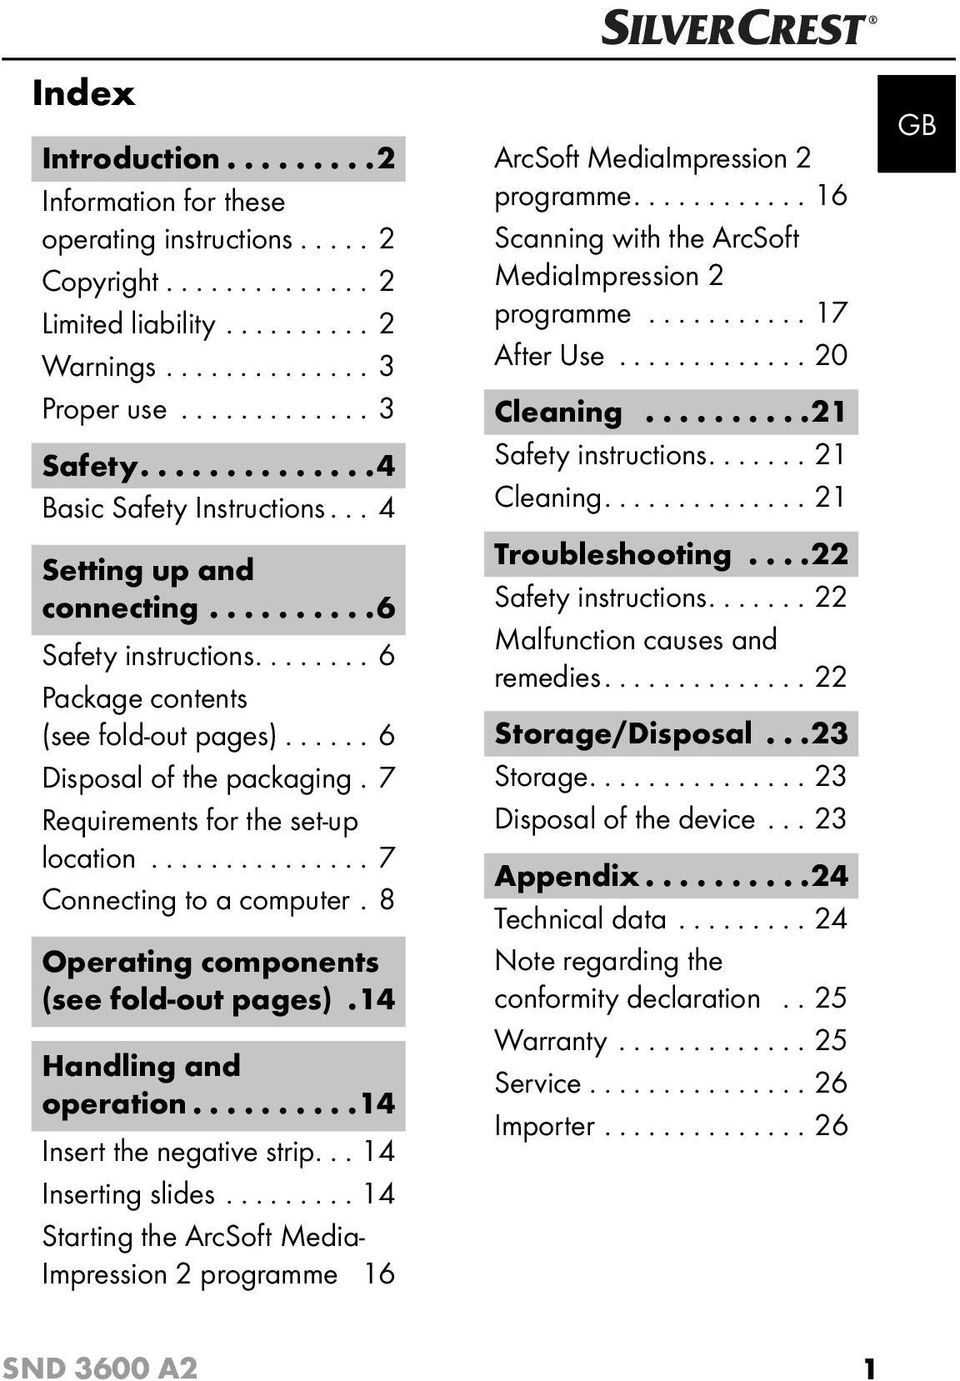 7 Requirements for the set-up location............... 7 Connecting to a computer. 8 Operating components (see fold-out pages).14 Handling and operation..........14 Insert the negative strip.